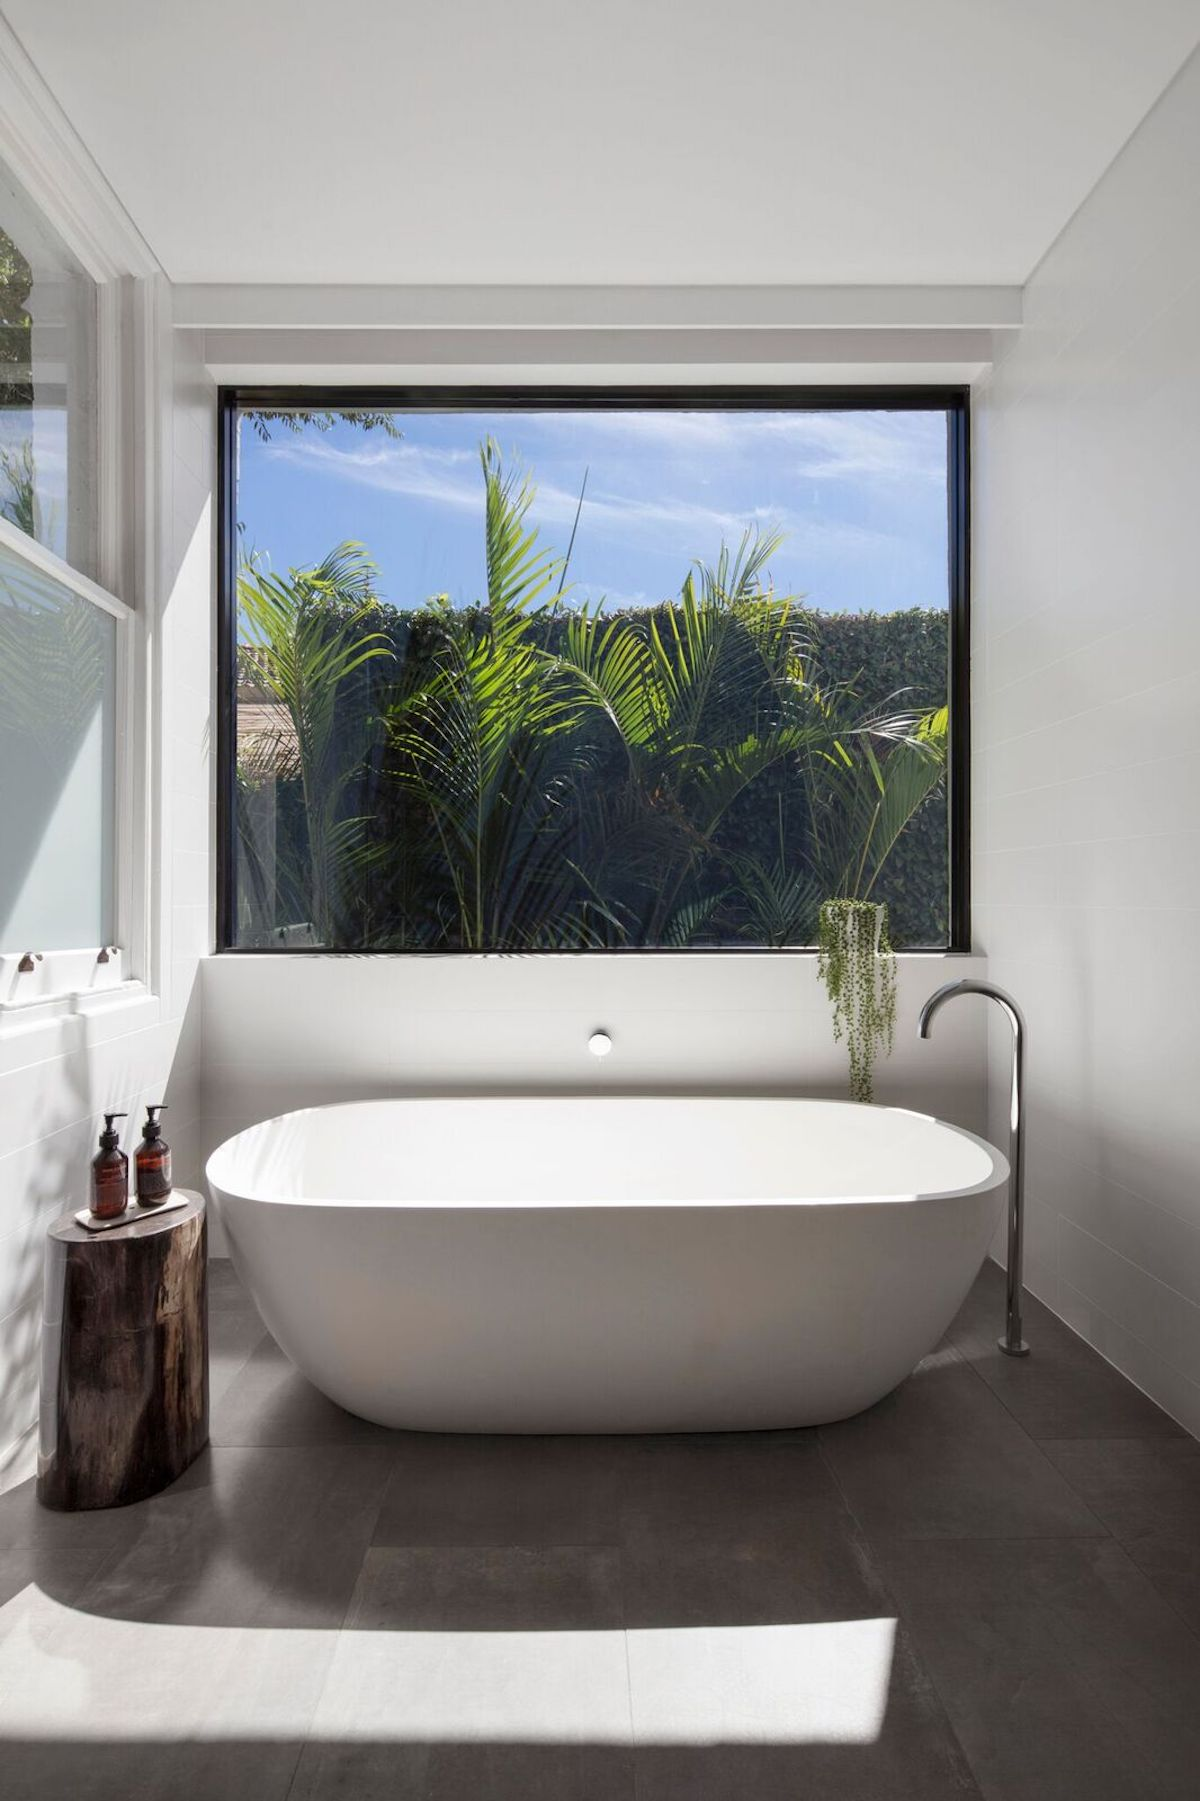 The bathrooms are bathed in light as well while strategically placed plants ensure privacy